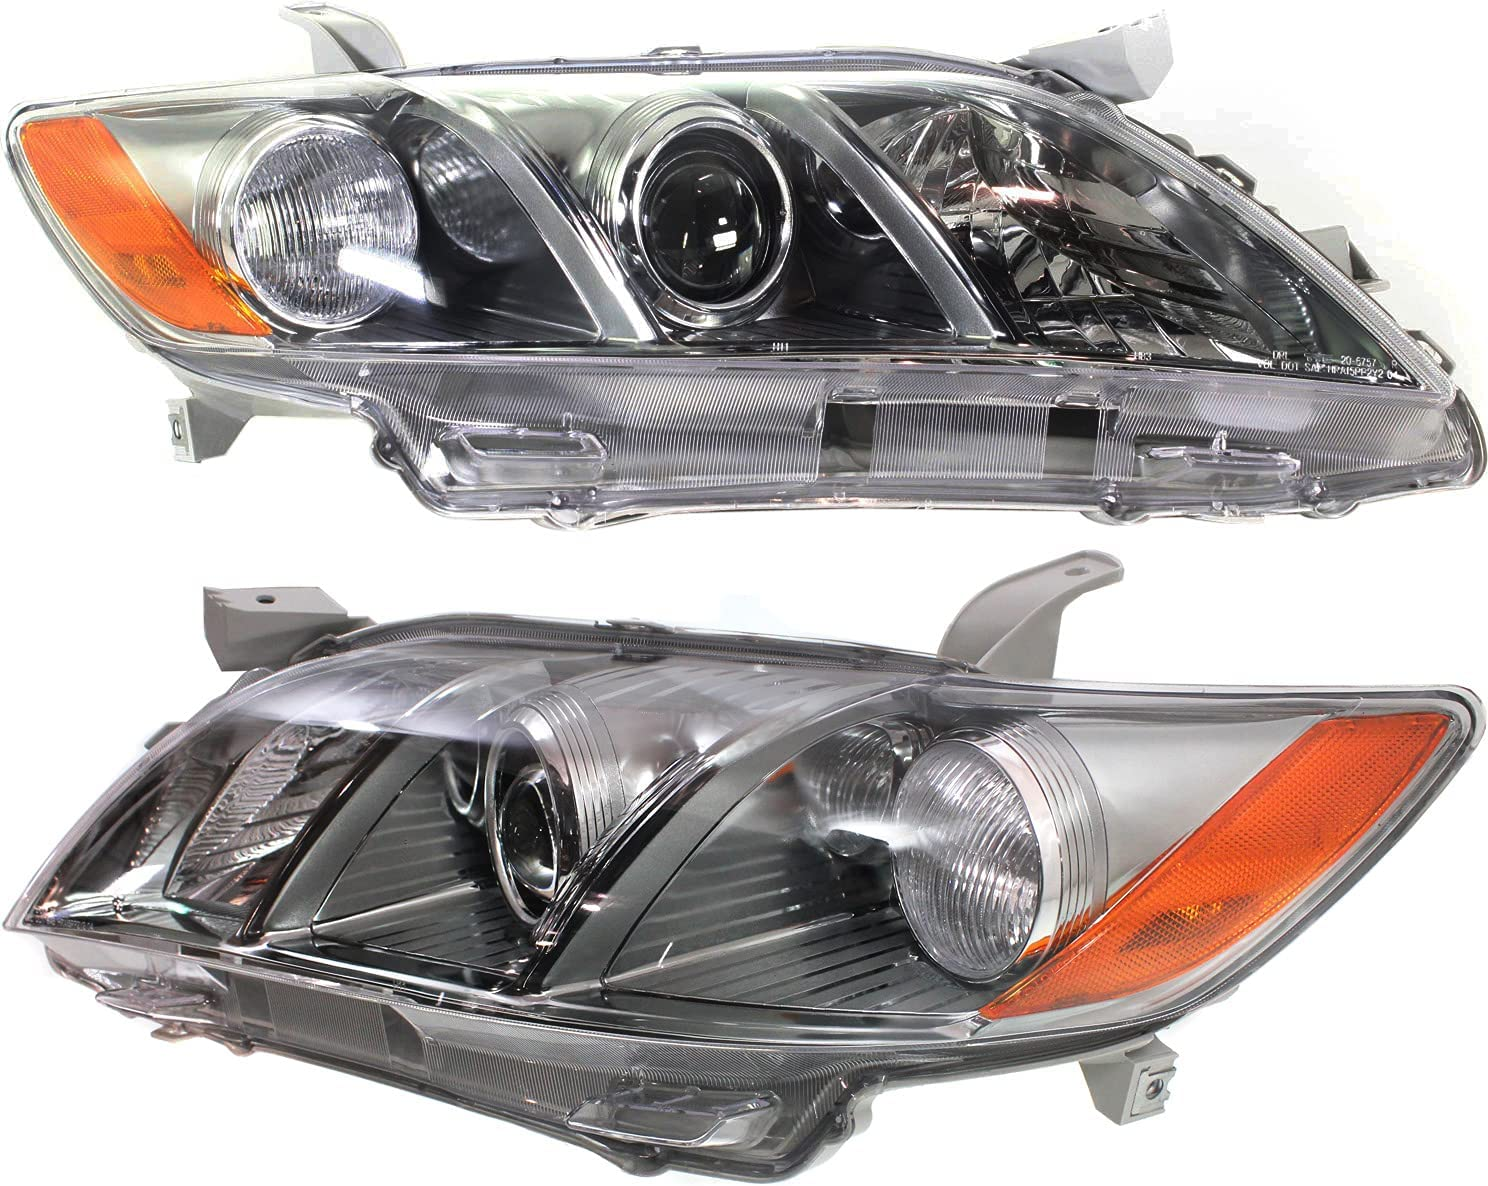 Garage-Pro Aftermarket Head lamp Compatible Toyot Popular overseas Milwaukee Mall 2007-2009 with